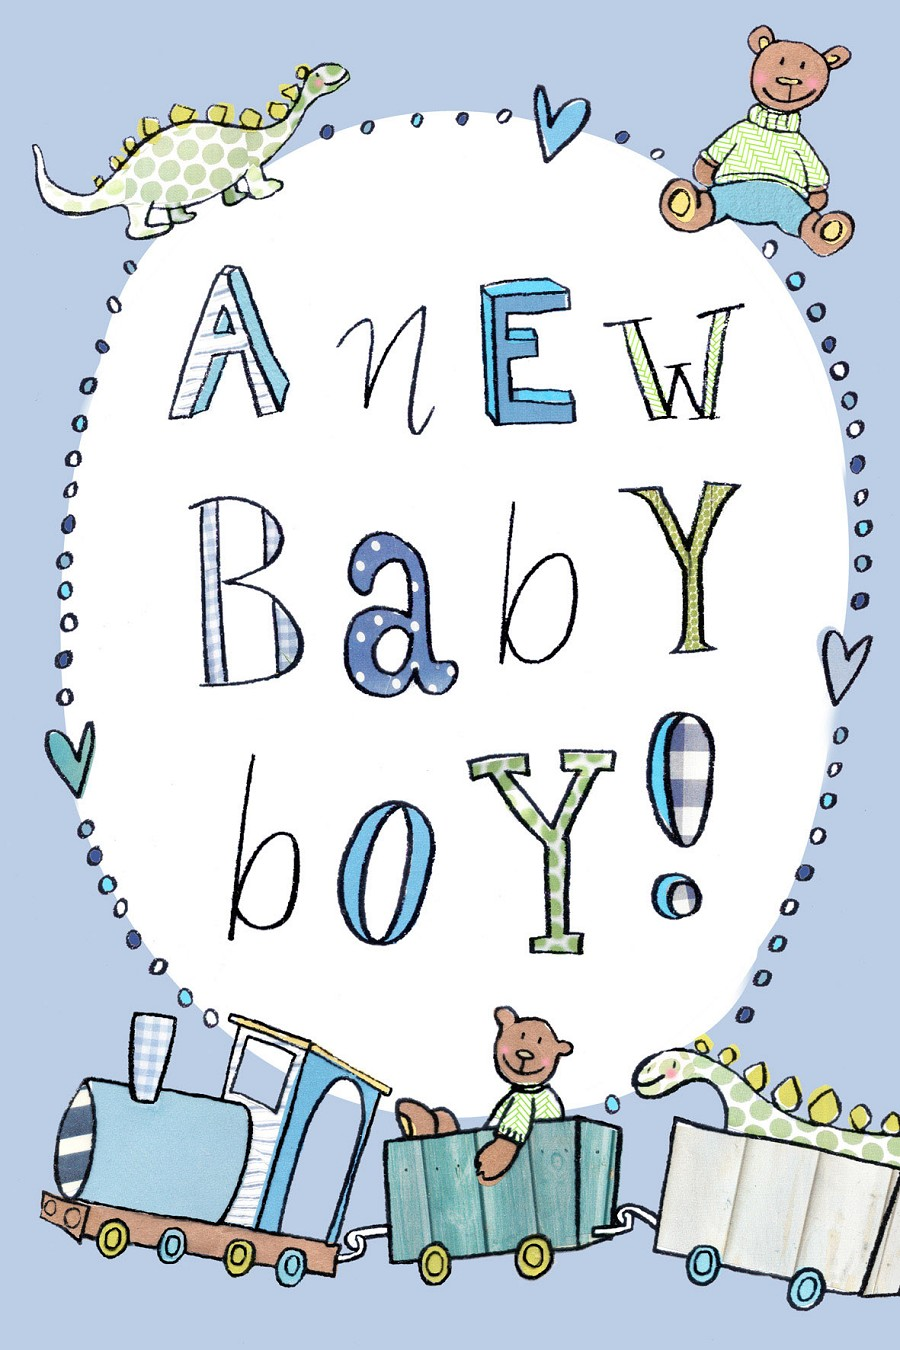 New baby pictures images graphics comments scraps 16 pictures a new baby boy kristyandbryce Images